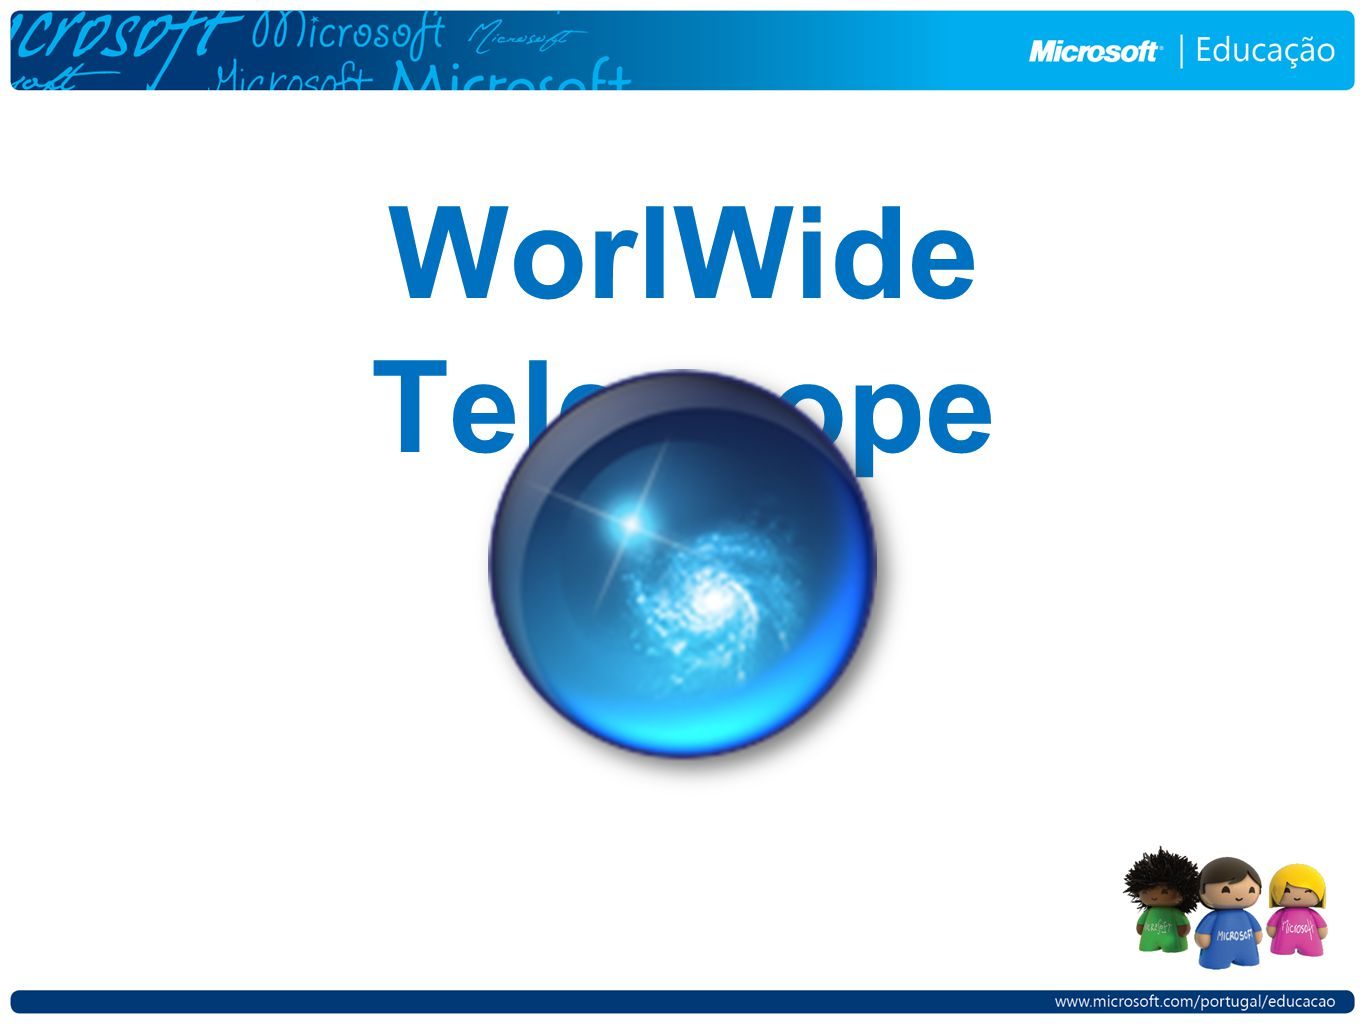 WorlWide Telescope